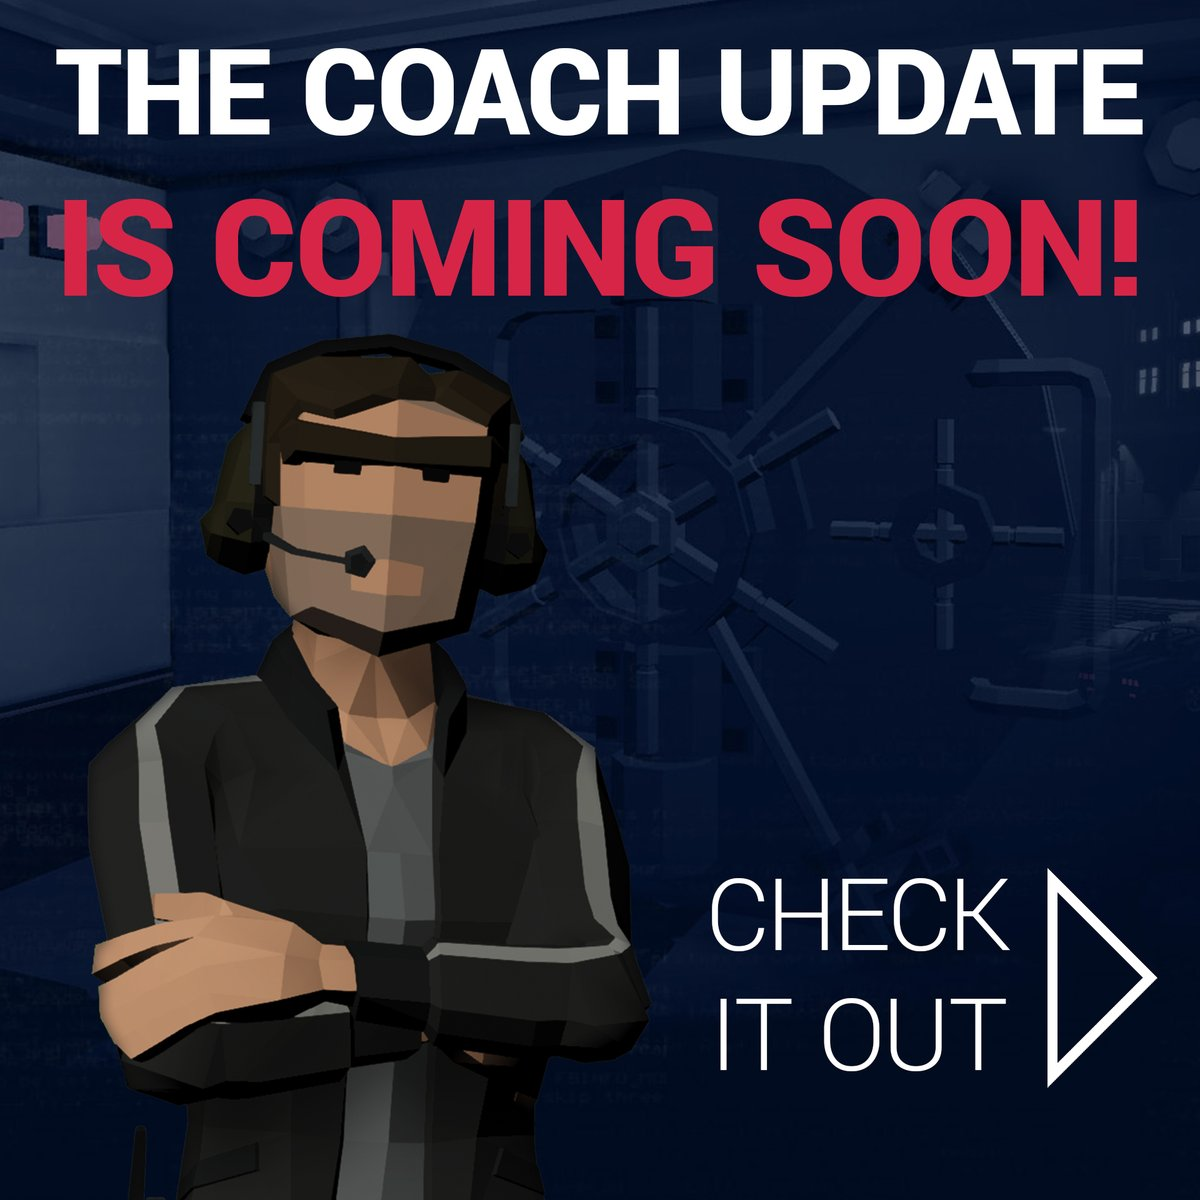 We're working hard on the next CinQ update. You can already check out details about the upcoming Coach feature over at https://playcinq.com/#Coach   #PlayCinQ #eSports #RemoteTraining #RemoteLearning #RemoteTeamwork #RemoteCoaching #Teamwork #Learning #Leadership #Gaming #LMSpic.twitter.com/8VdmWQA7Y9